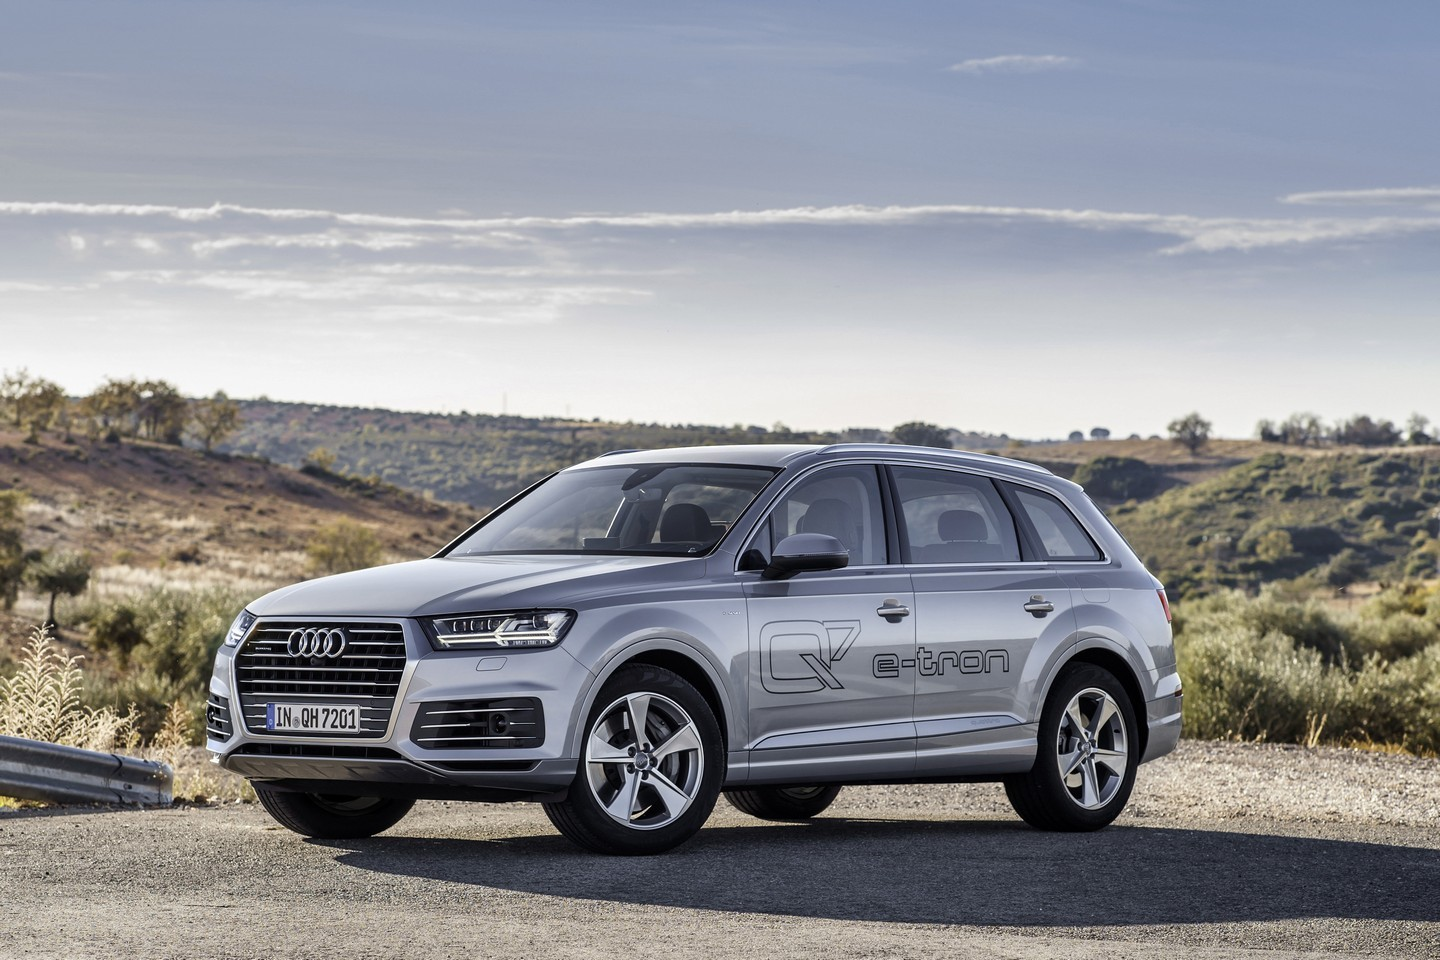 2016 audi q7 e tron quattro launched in germany 0 to 100 km h in 6 seconds 1 7 l 100km. Black Bedroom Furniture Sets. Home Design Ideas